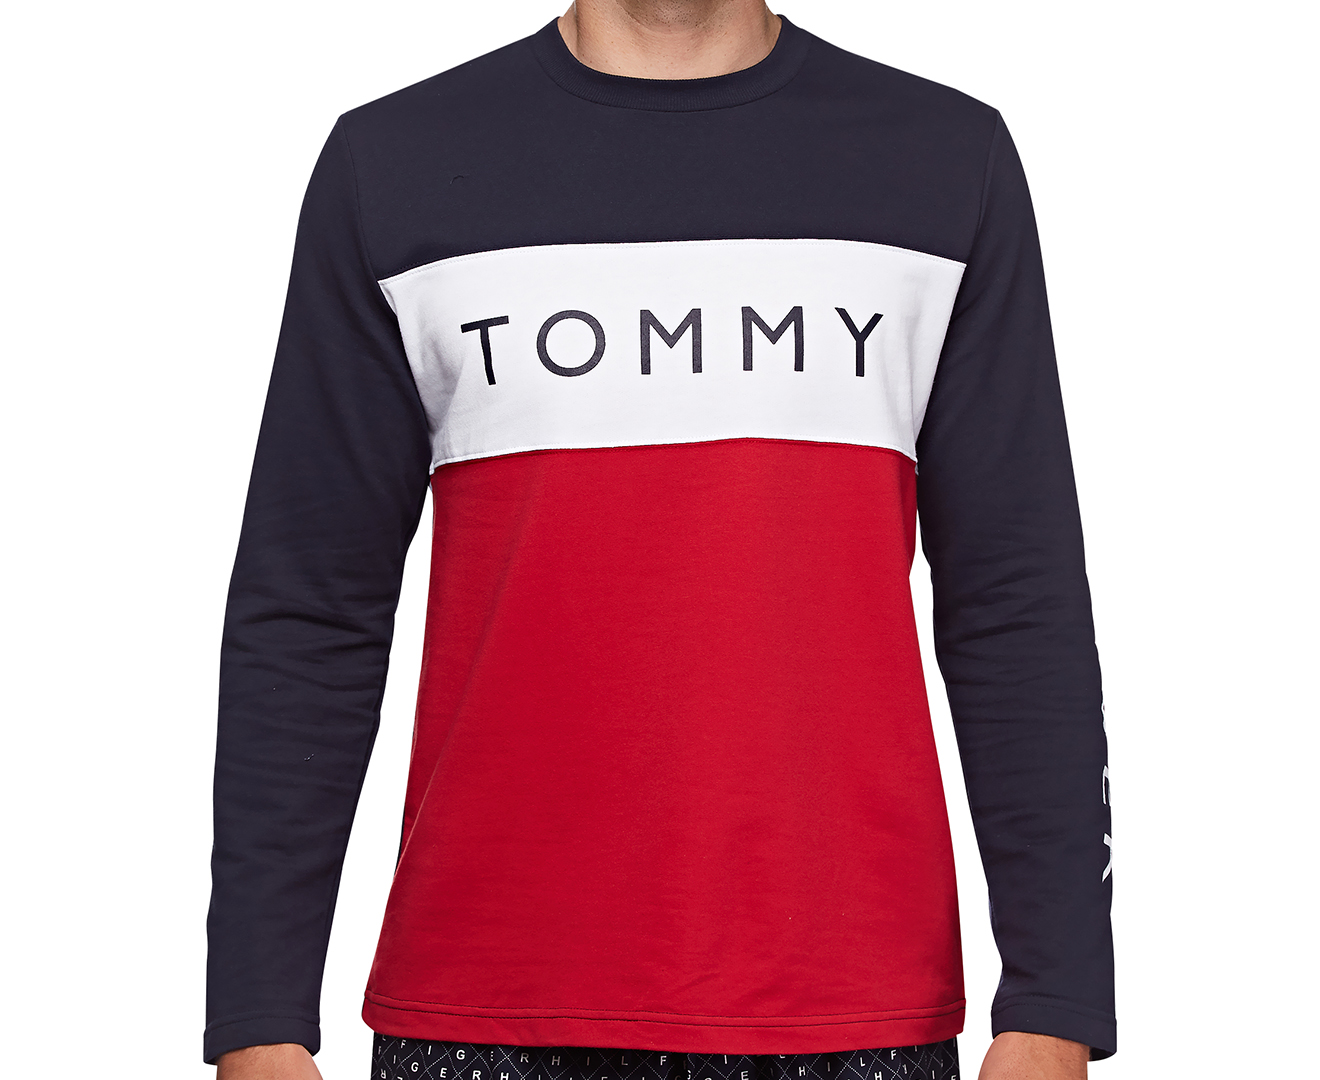 a678f42e Tommy Hilfiger Men's French Terry Jumper - Dark Navy/Red | Catch.com.au